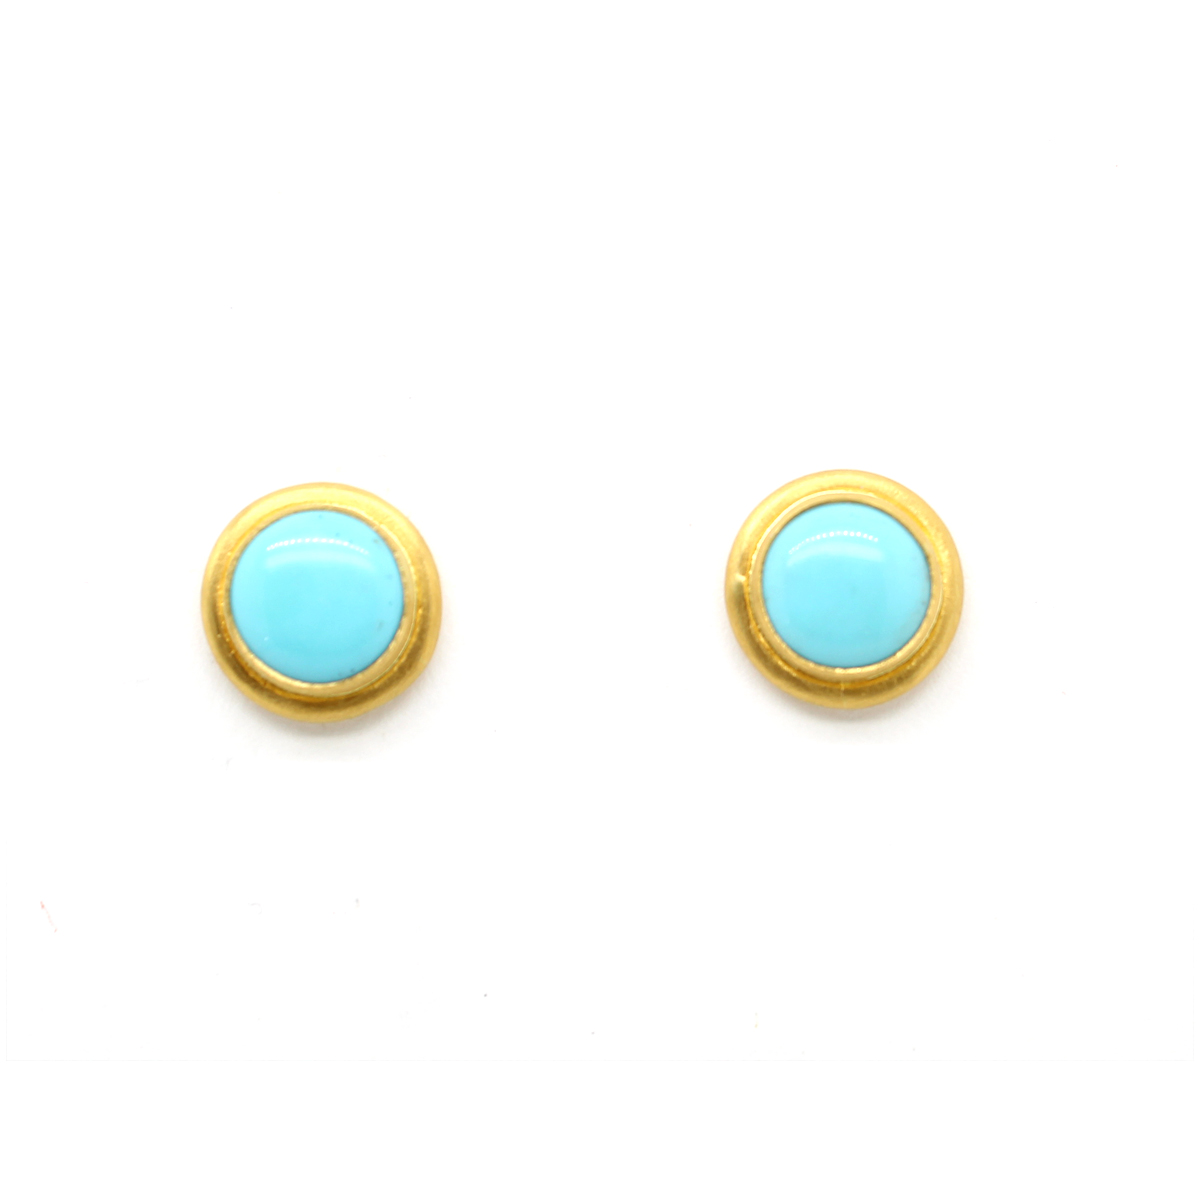 "Lika Behar 24 Karat Yellow Gold Turquoise ""My World"" Stud Earrings"